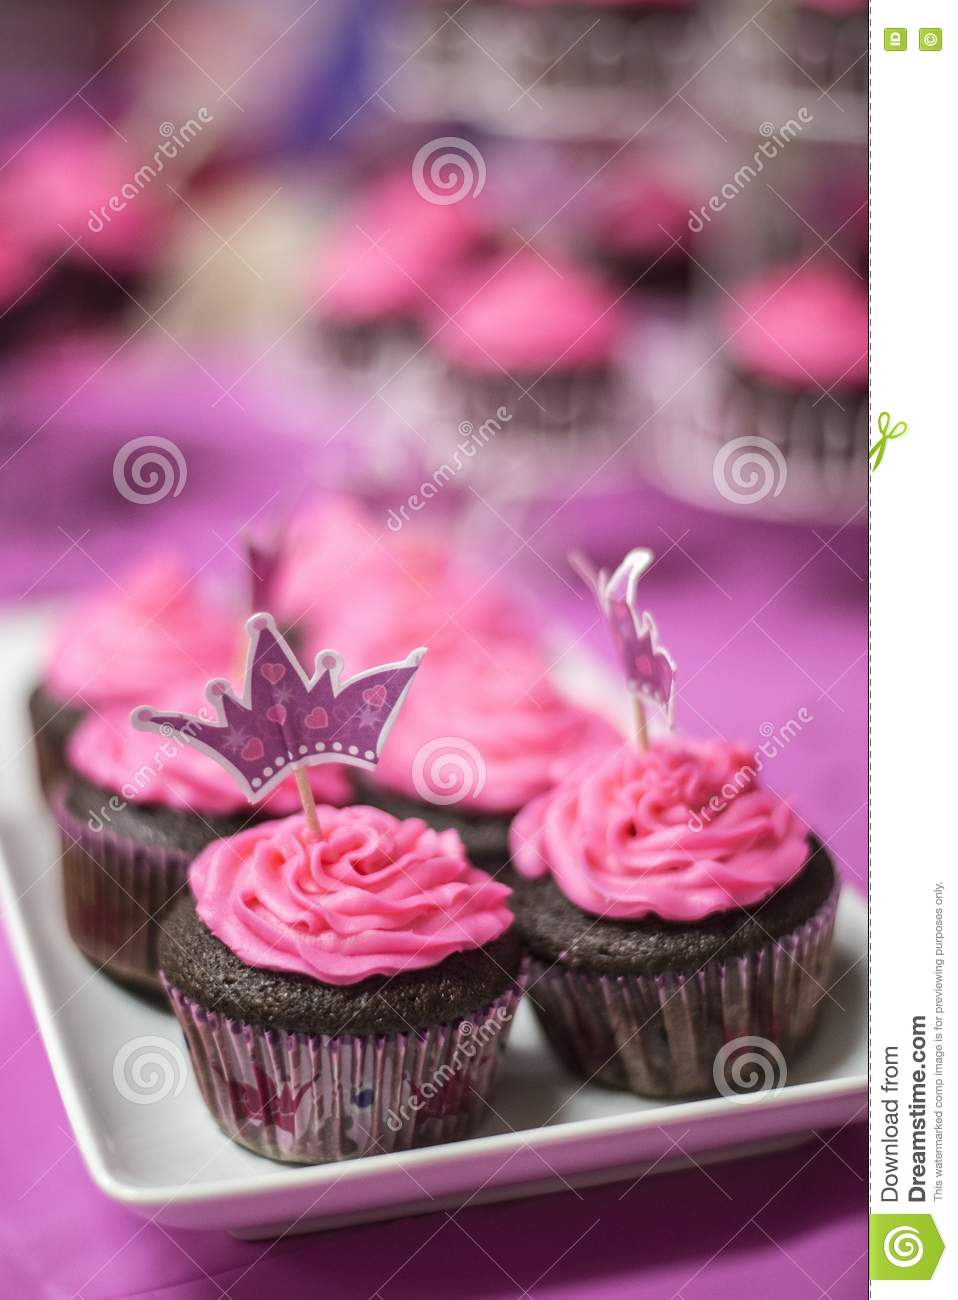 Vibrantly Frosted Pink Chocolate Cupcakes Adorn The Table For Perfect Princess Birthday Party